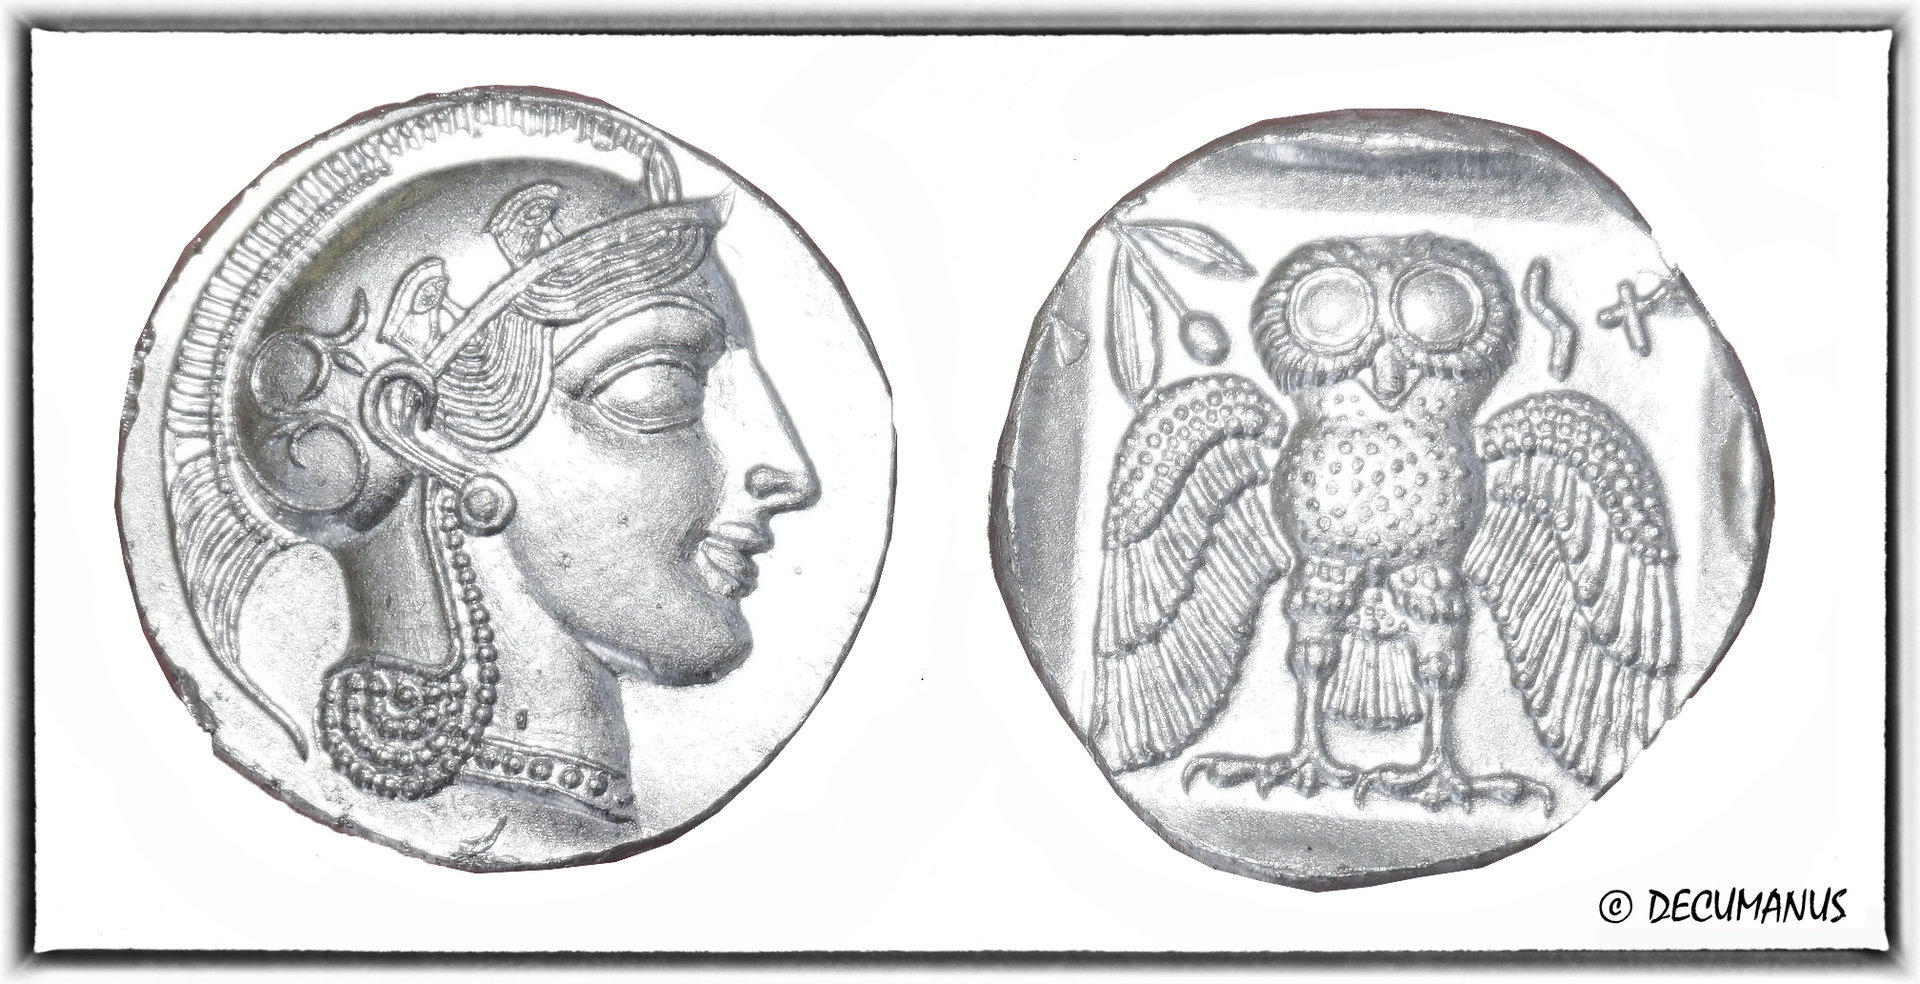 DEKADRACHM OF ATHENS WITH THE OWL (5th c B.C.) - REPRODUCTION OF ANCIENT GREECE